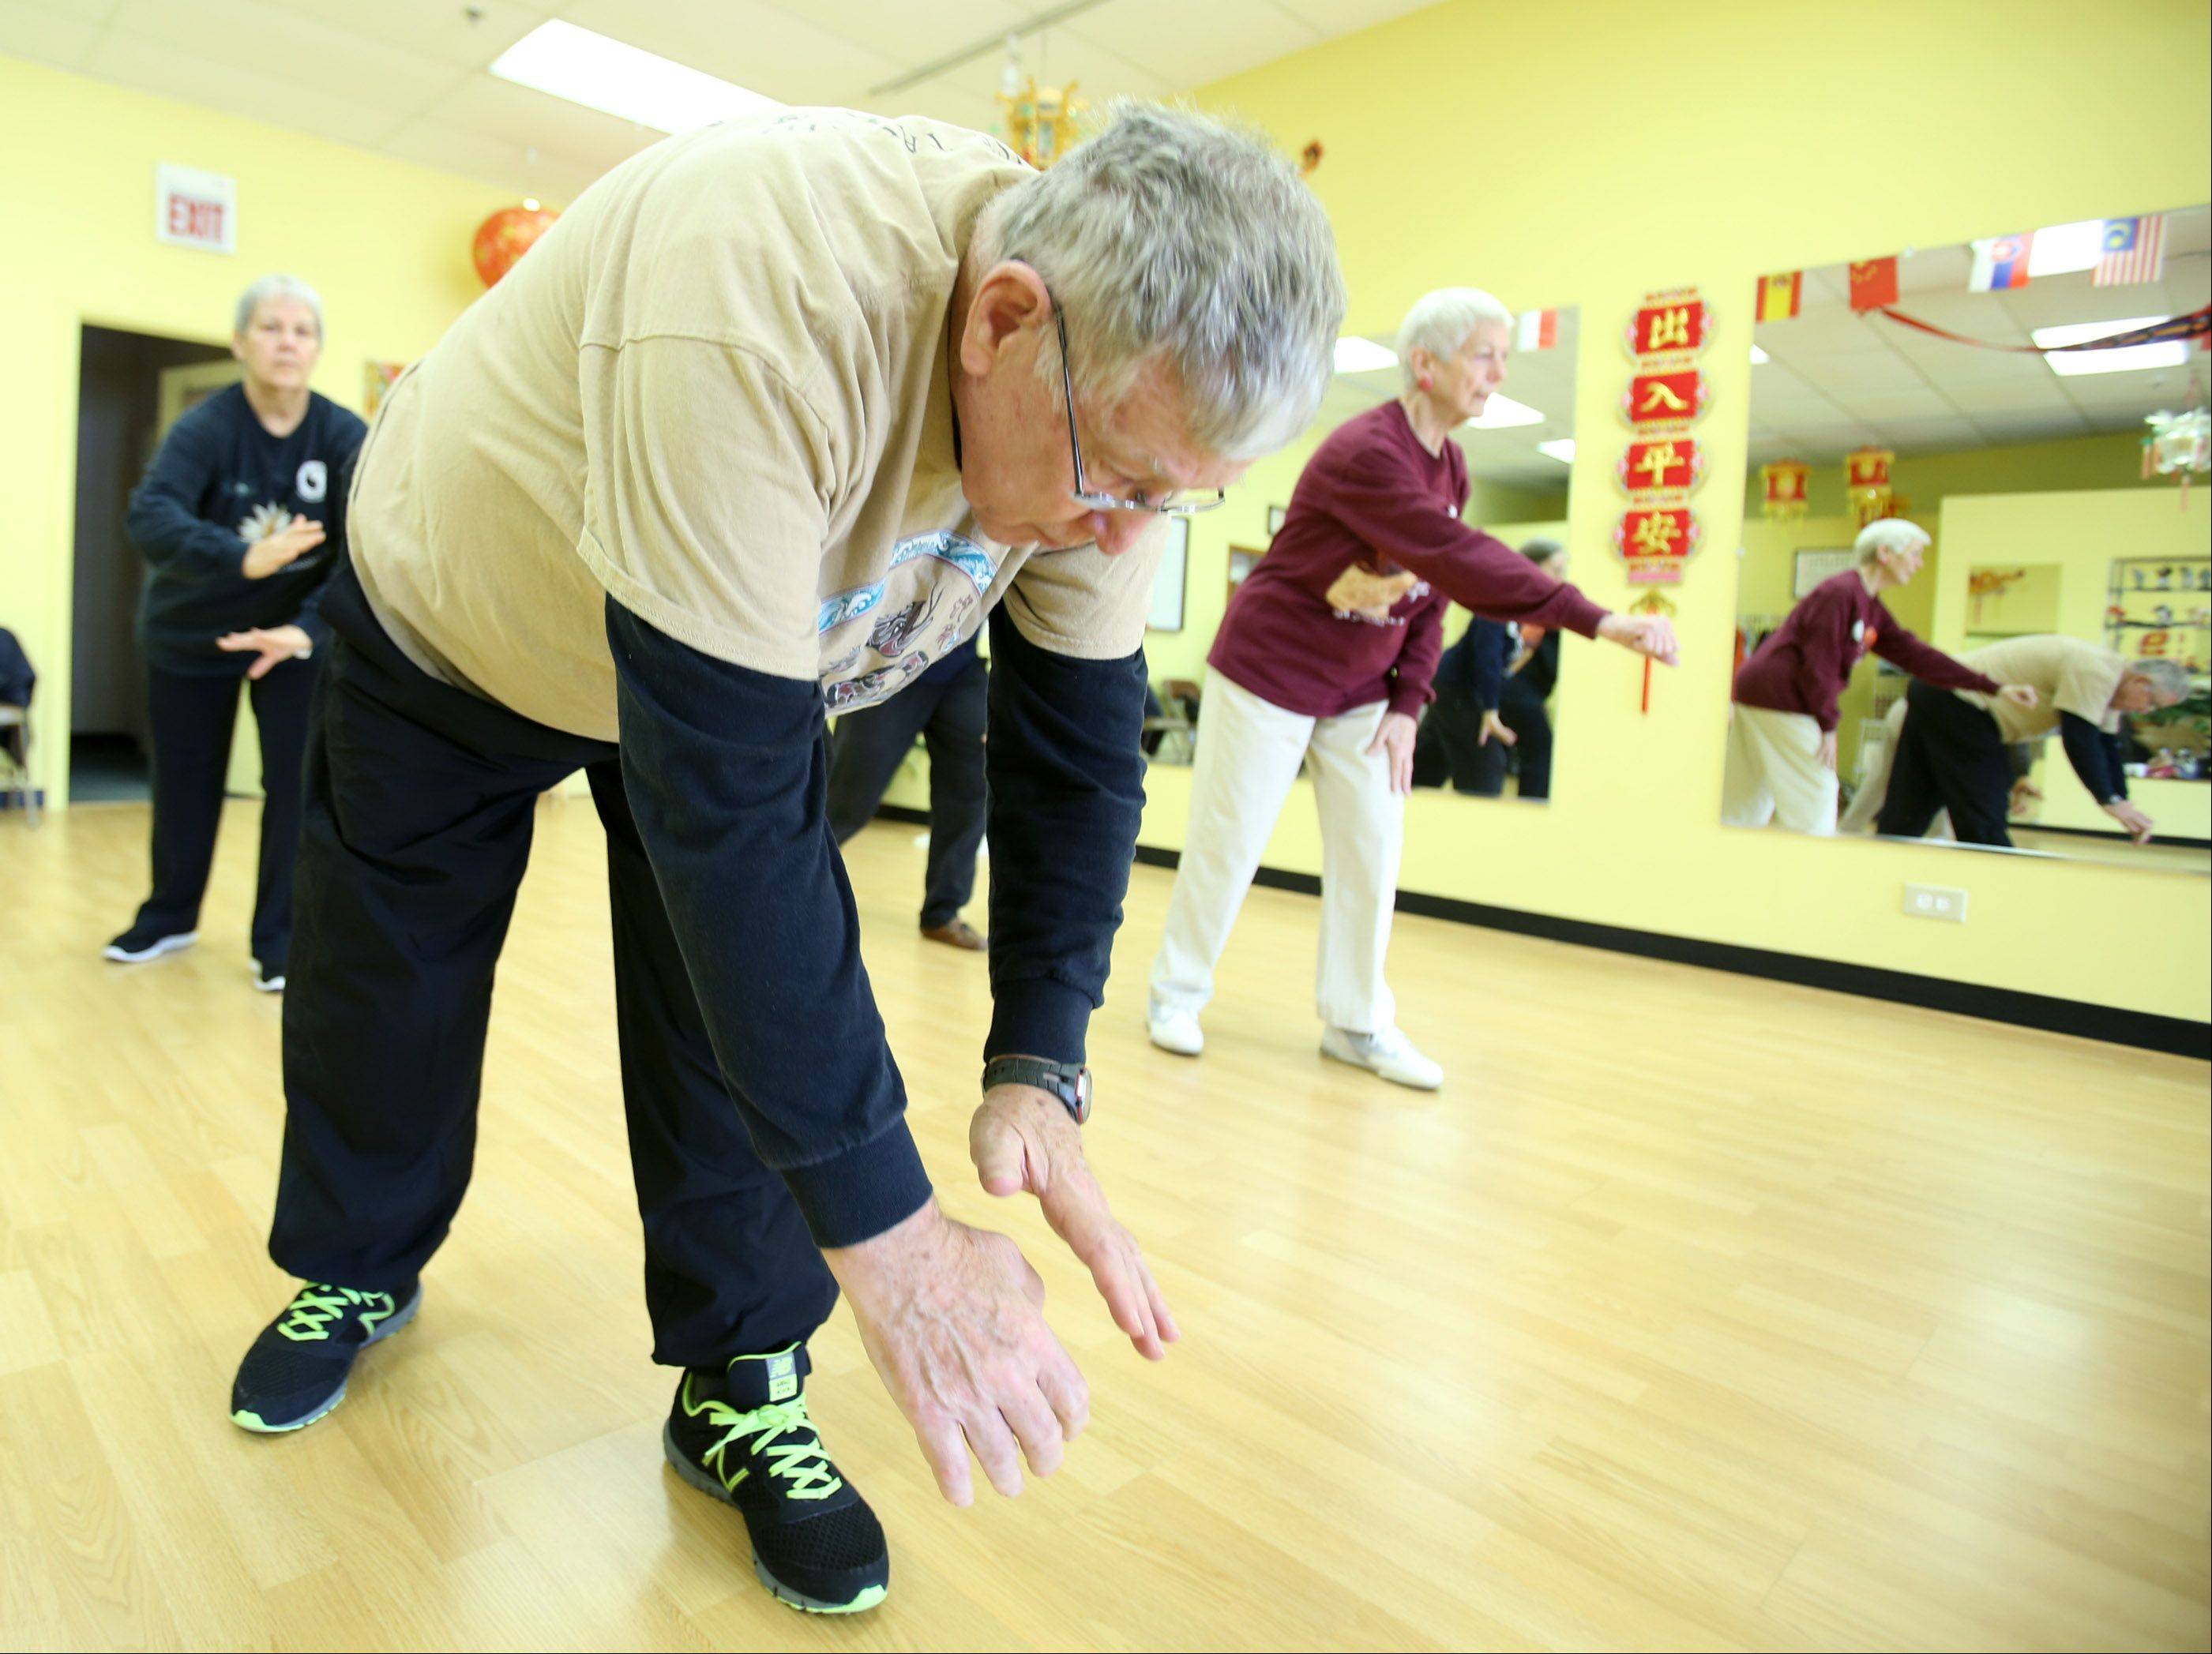 Tai Chi isn't just for women, Bud Mitchell of Arlington Heights and the other men in this Tai Chi class show.